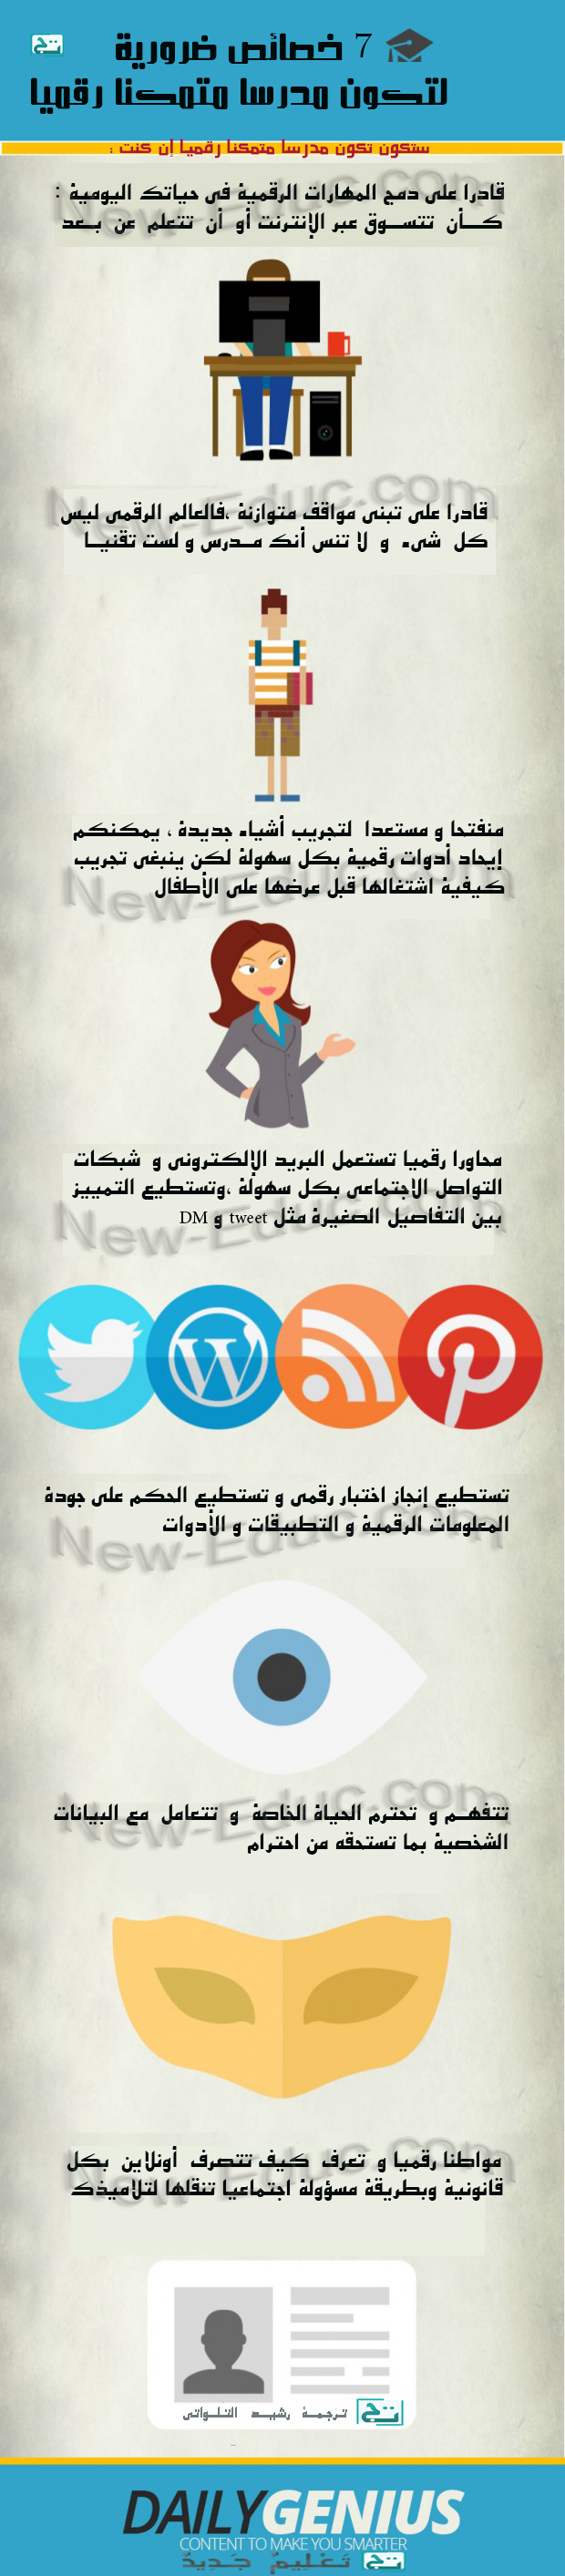 digital-teacher مدرسا متمكنا رقميا